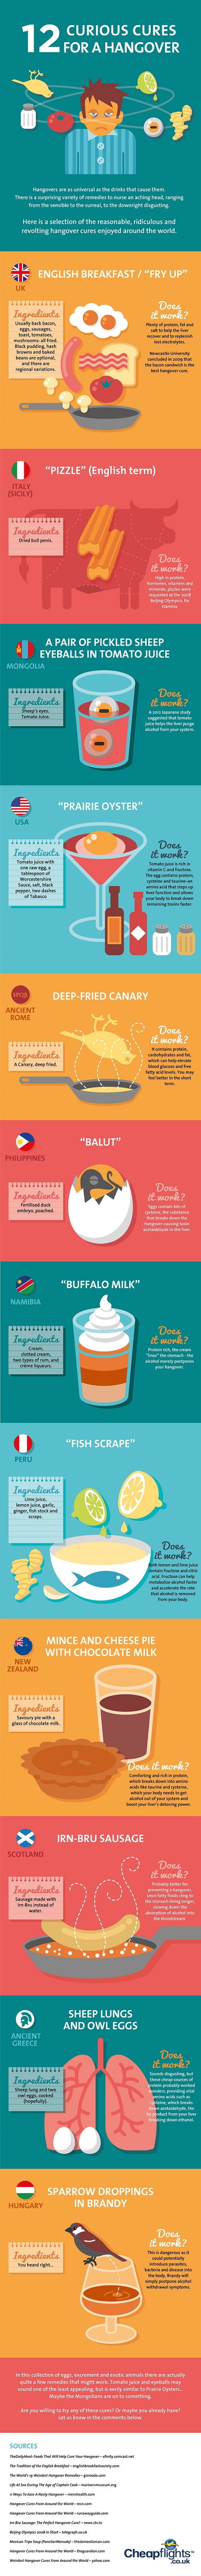 12 Curious Cures for Hangover